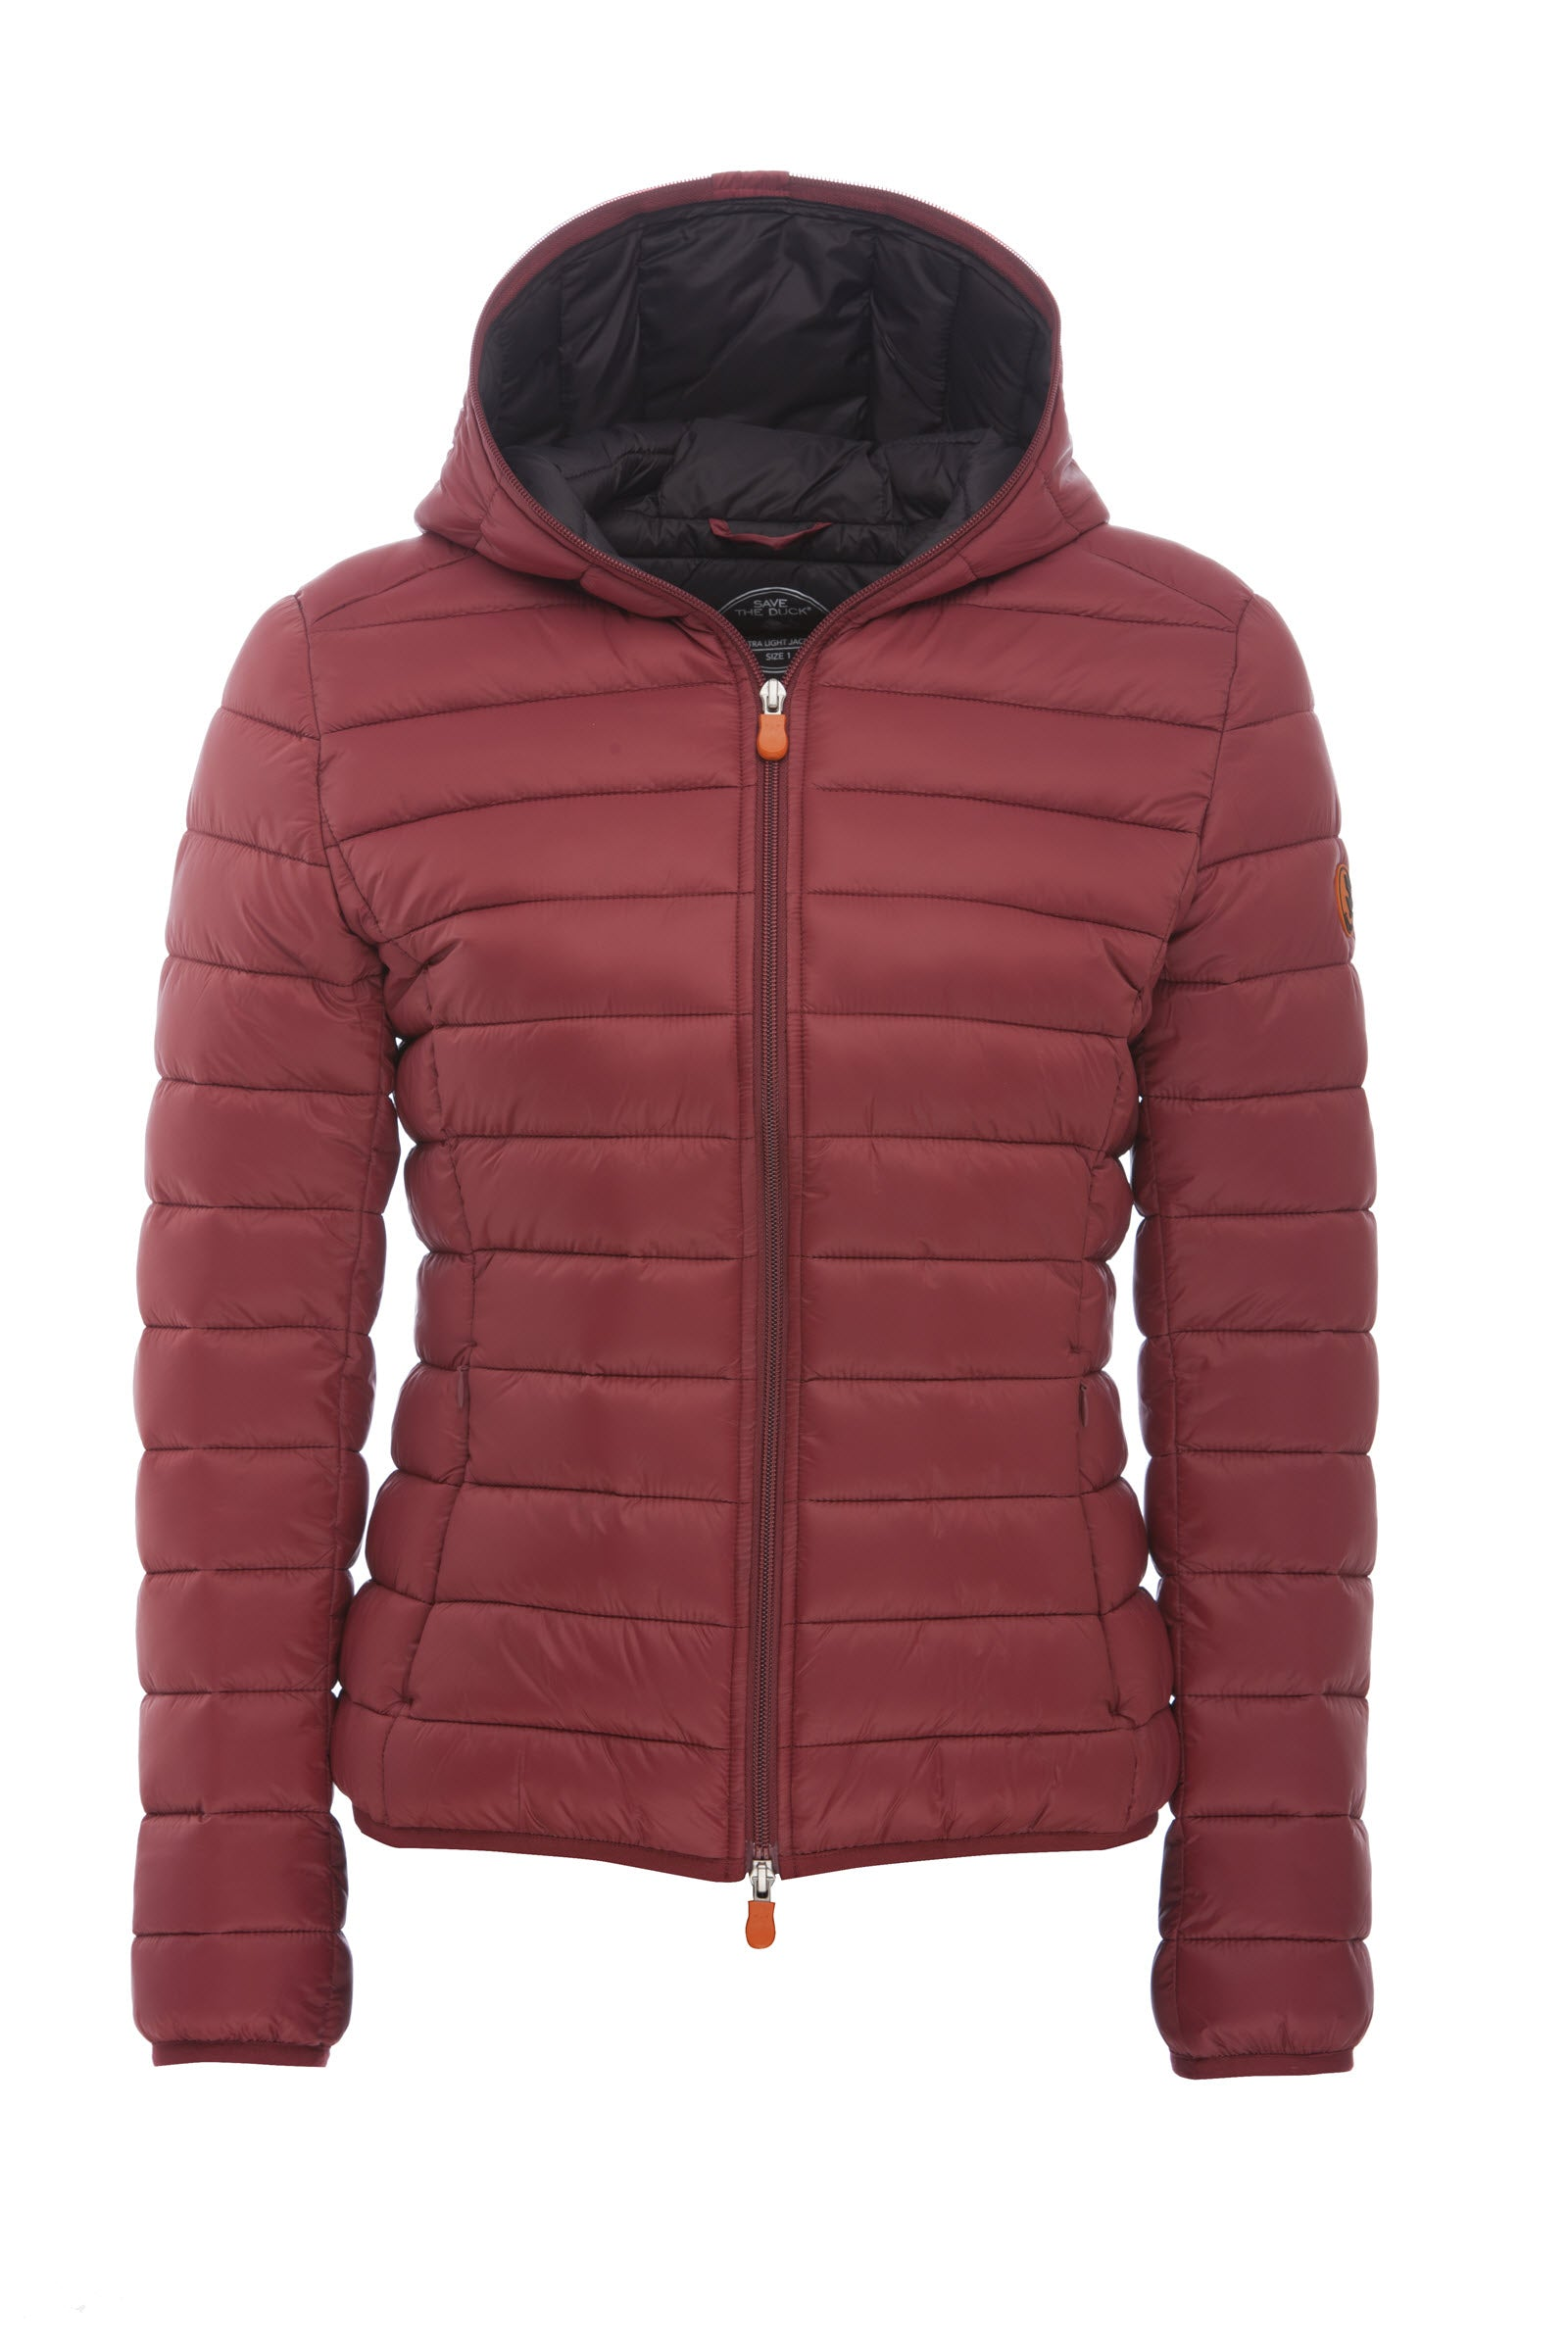 Women's GIGA Hooded Puffer Jacket in Burgundy